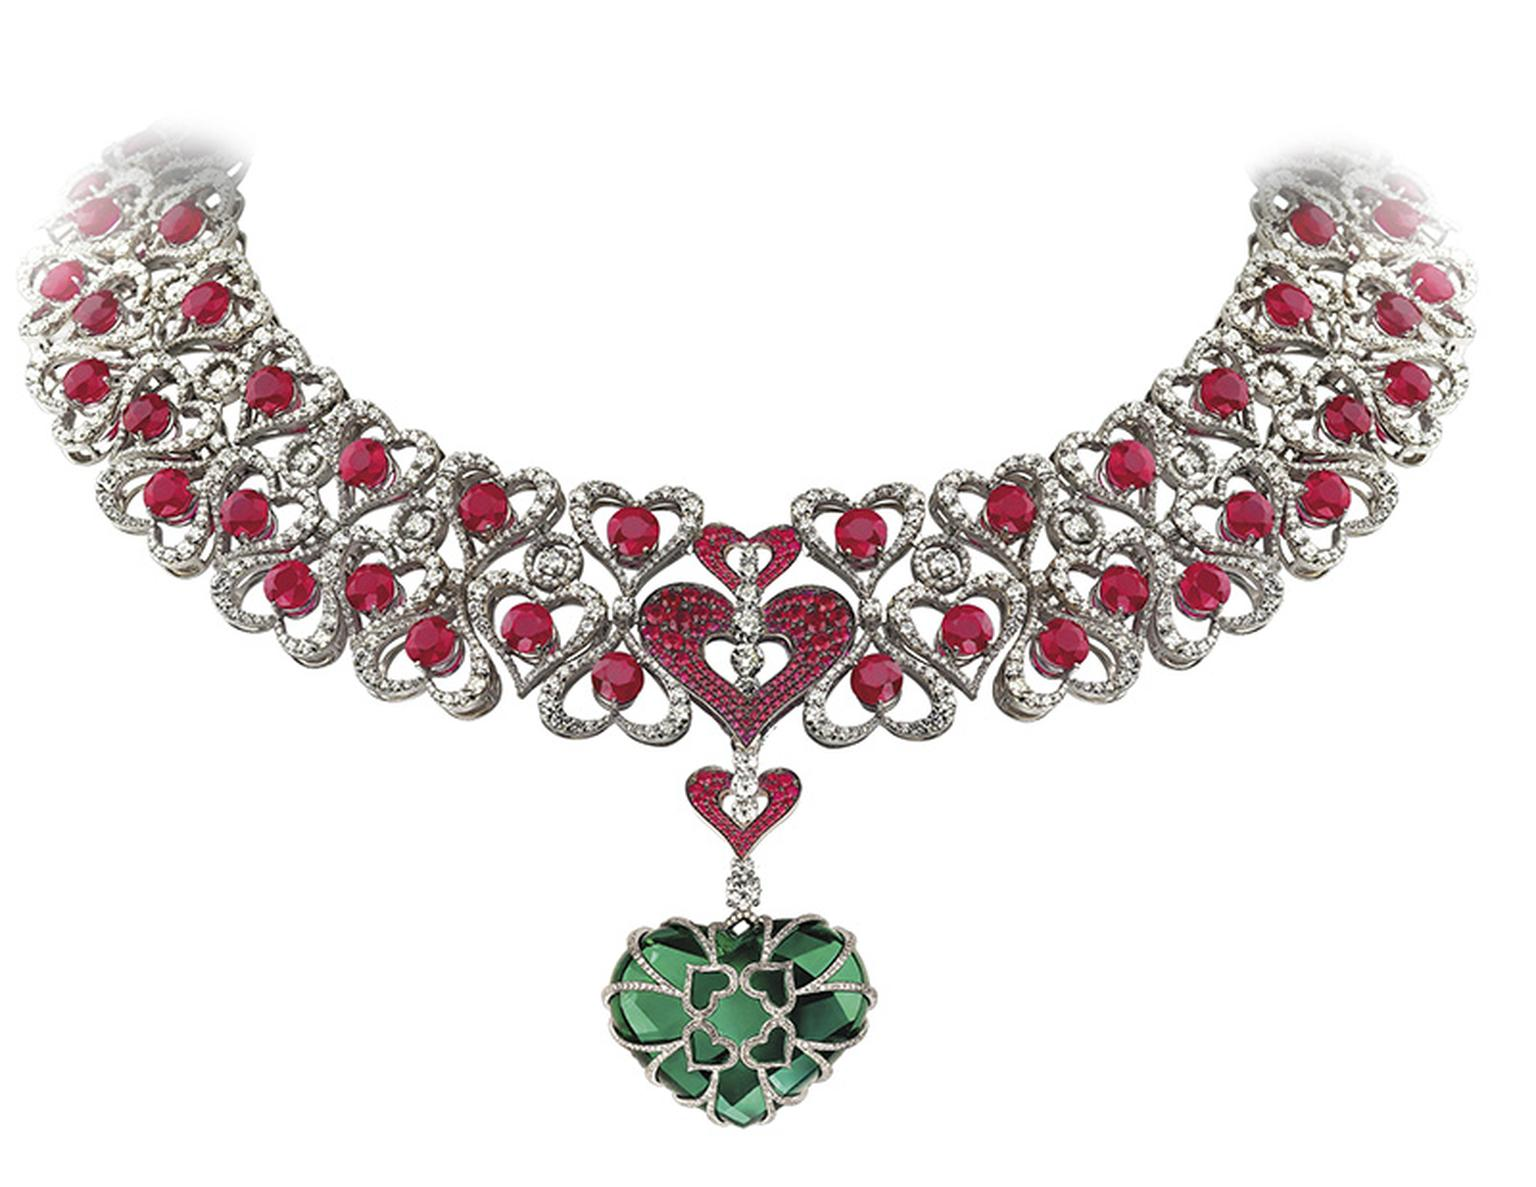 01-AVAKIAN-Heart-Shaped-Columbian-Emerald-Necklace-1